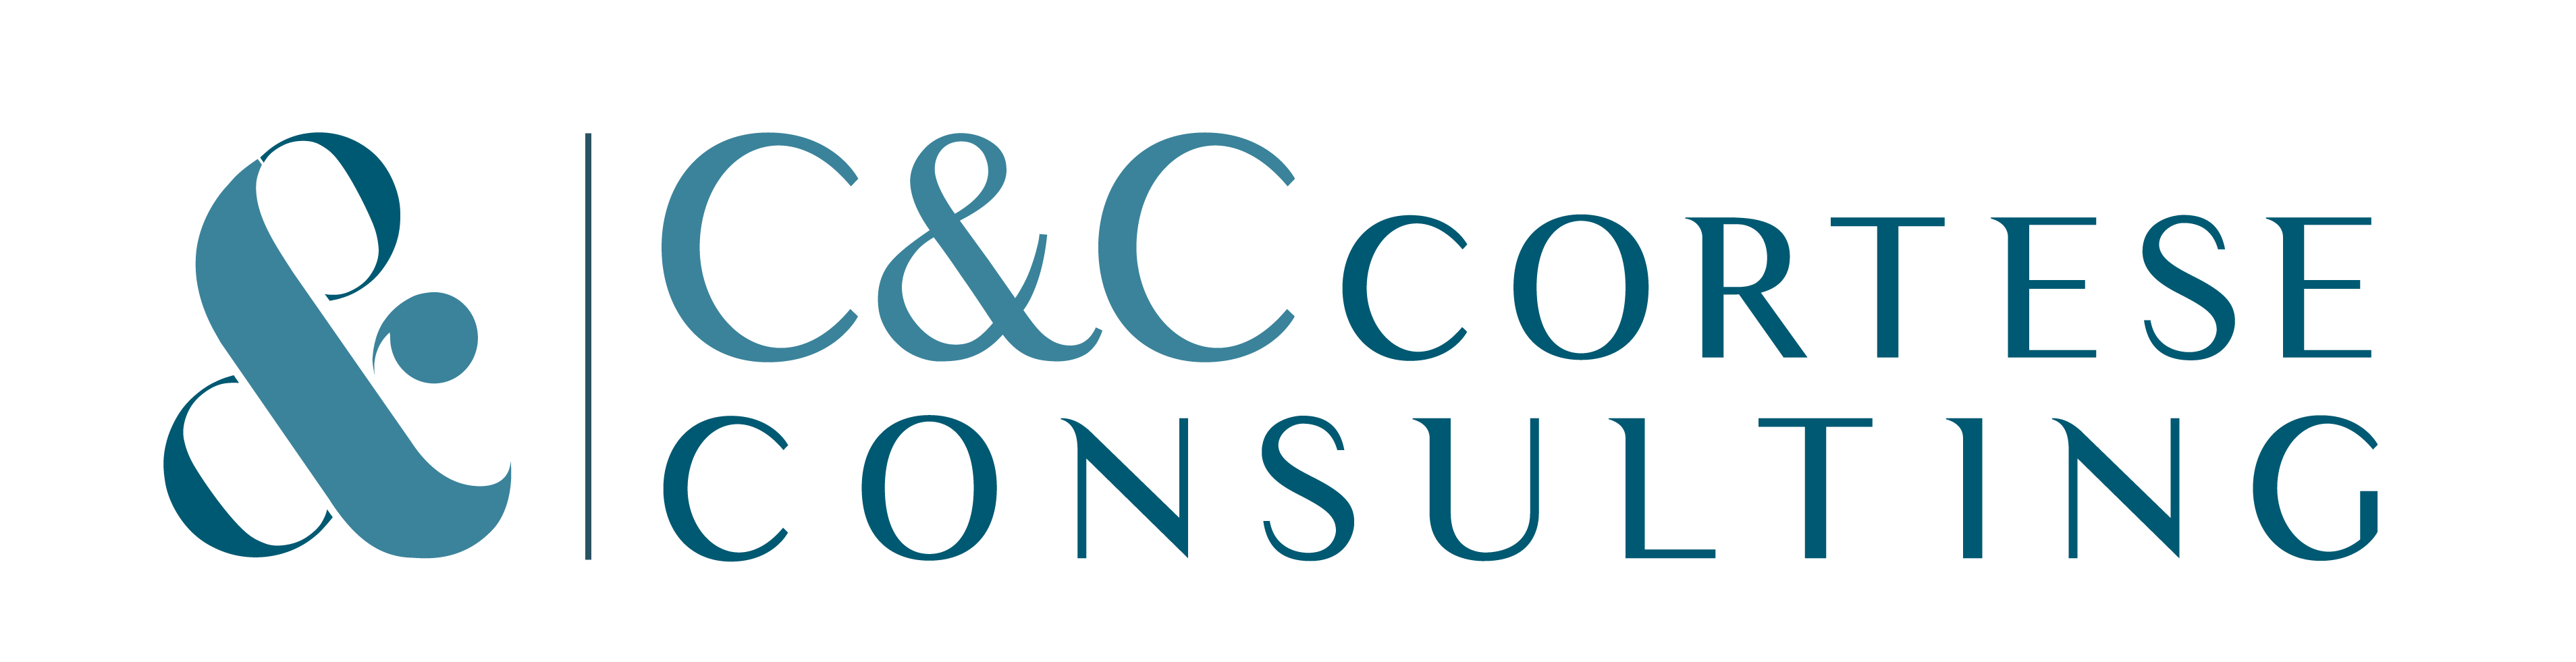 C&C Cortese Consulting